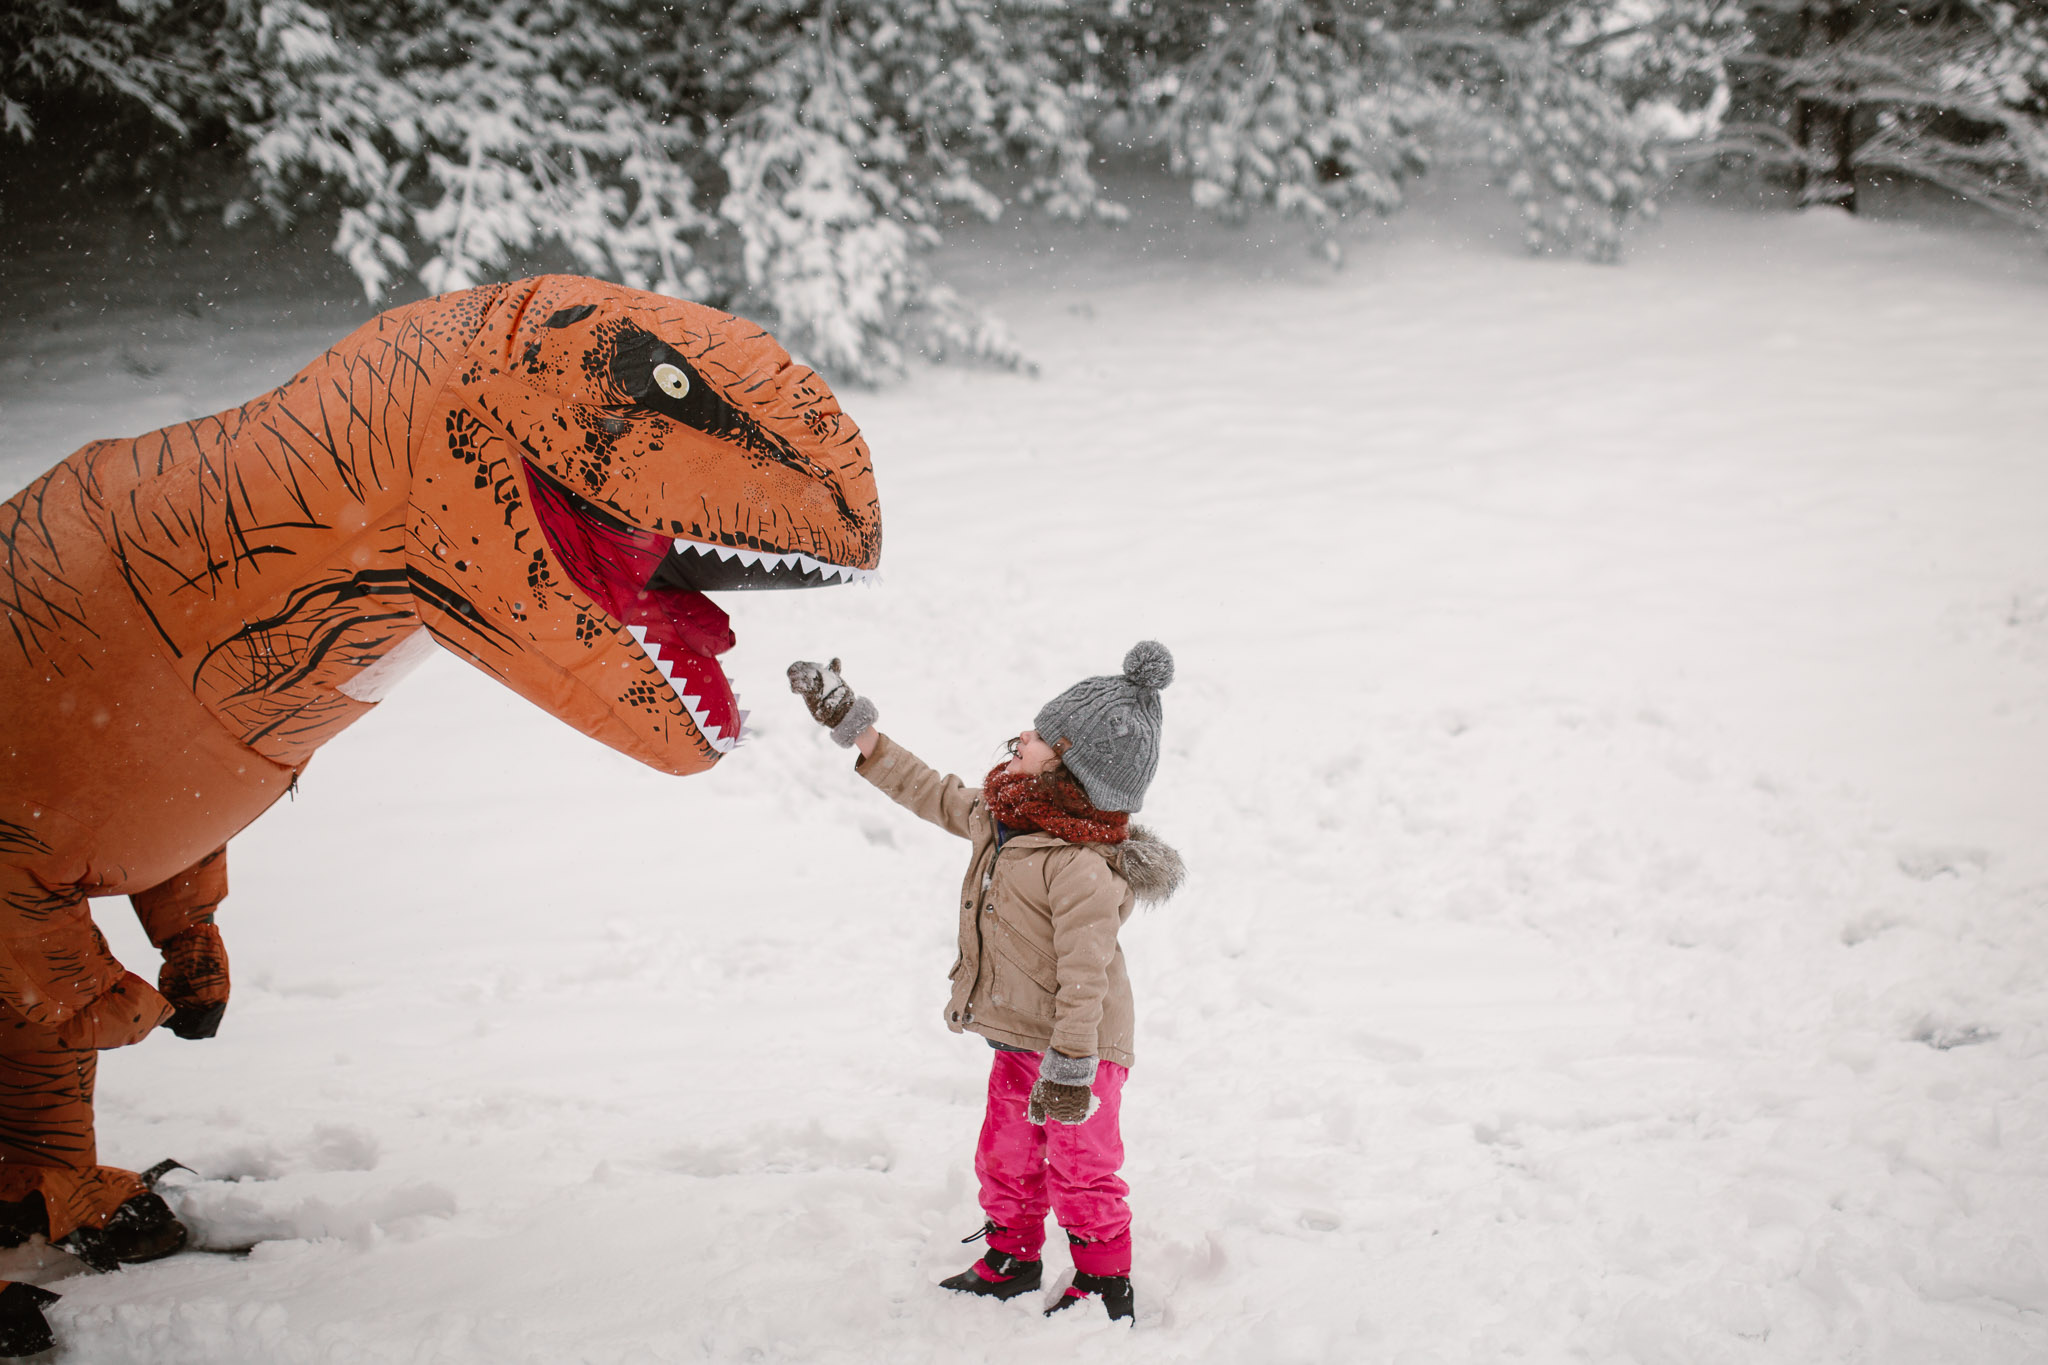 A toddler attempts to feed an orange dinosaur as they play outside in the snow